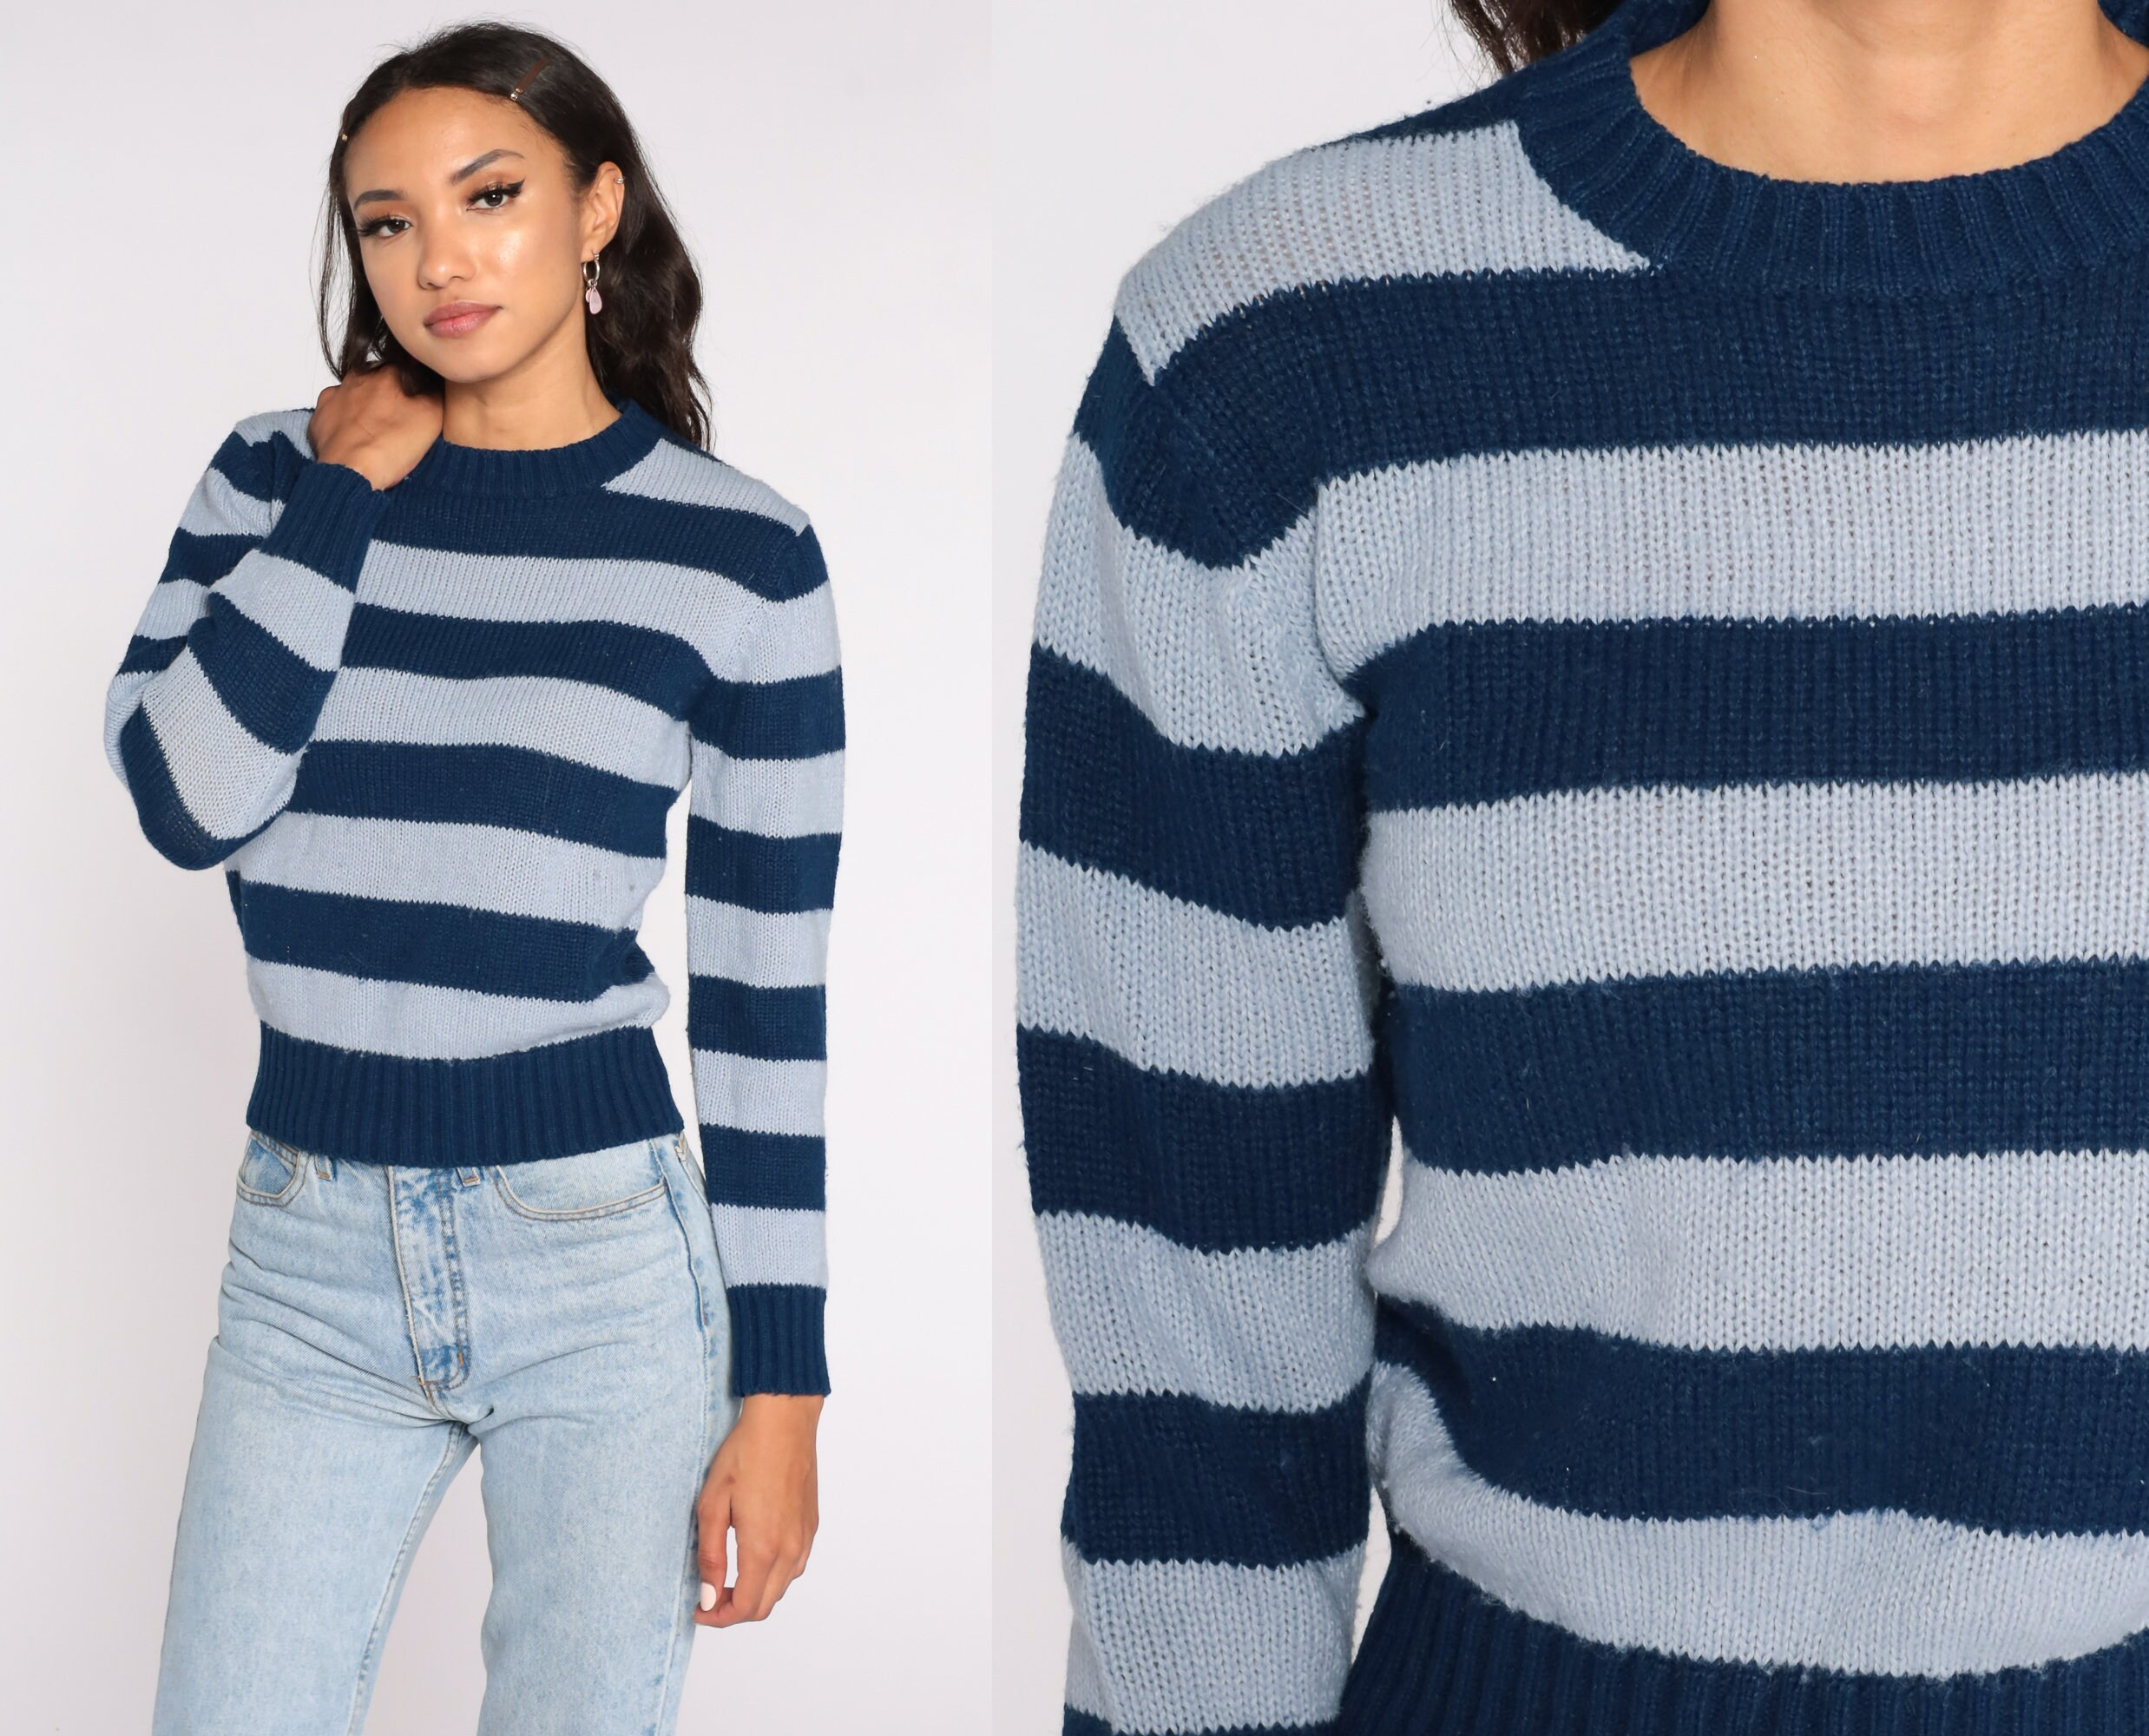 80s Sweatshirts, Sweaters, Vests | Women Blue Striped Sweater Navy 80S Knit Slouchy Pullover Jumper 1980S Vintage Retro Small S $39.00 AT vintagedancer.com